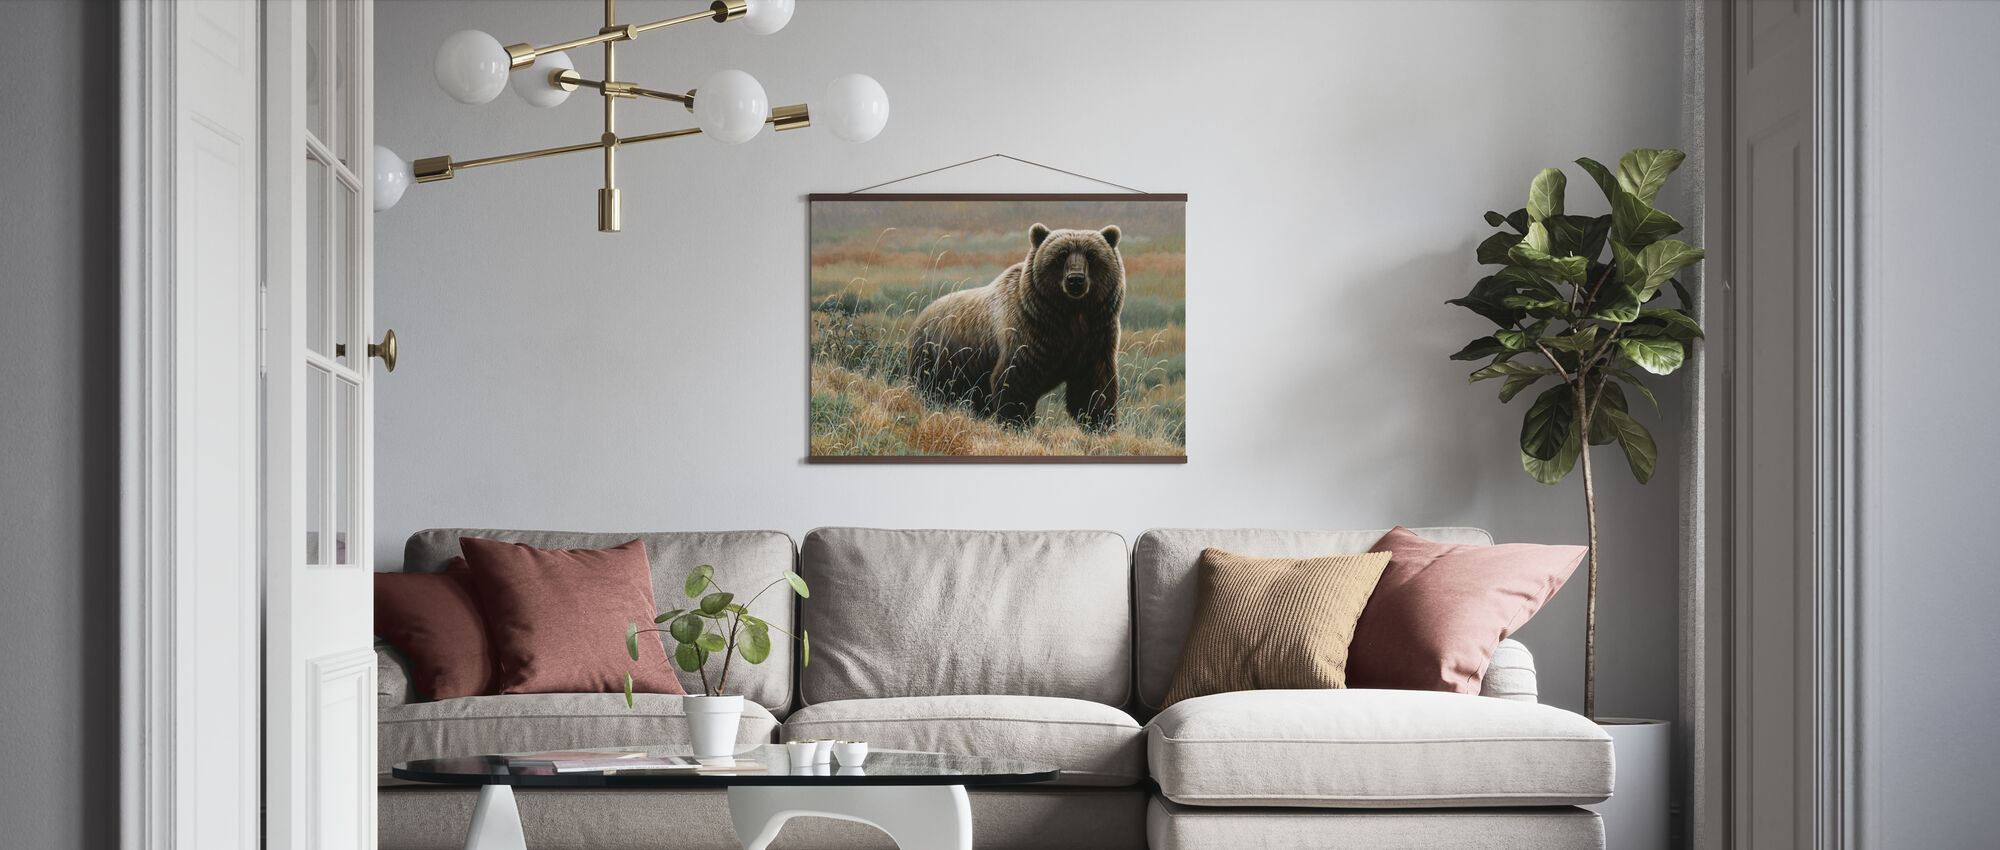 Grizzly on Tundra - Poster - Living Room